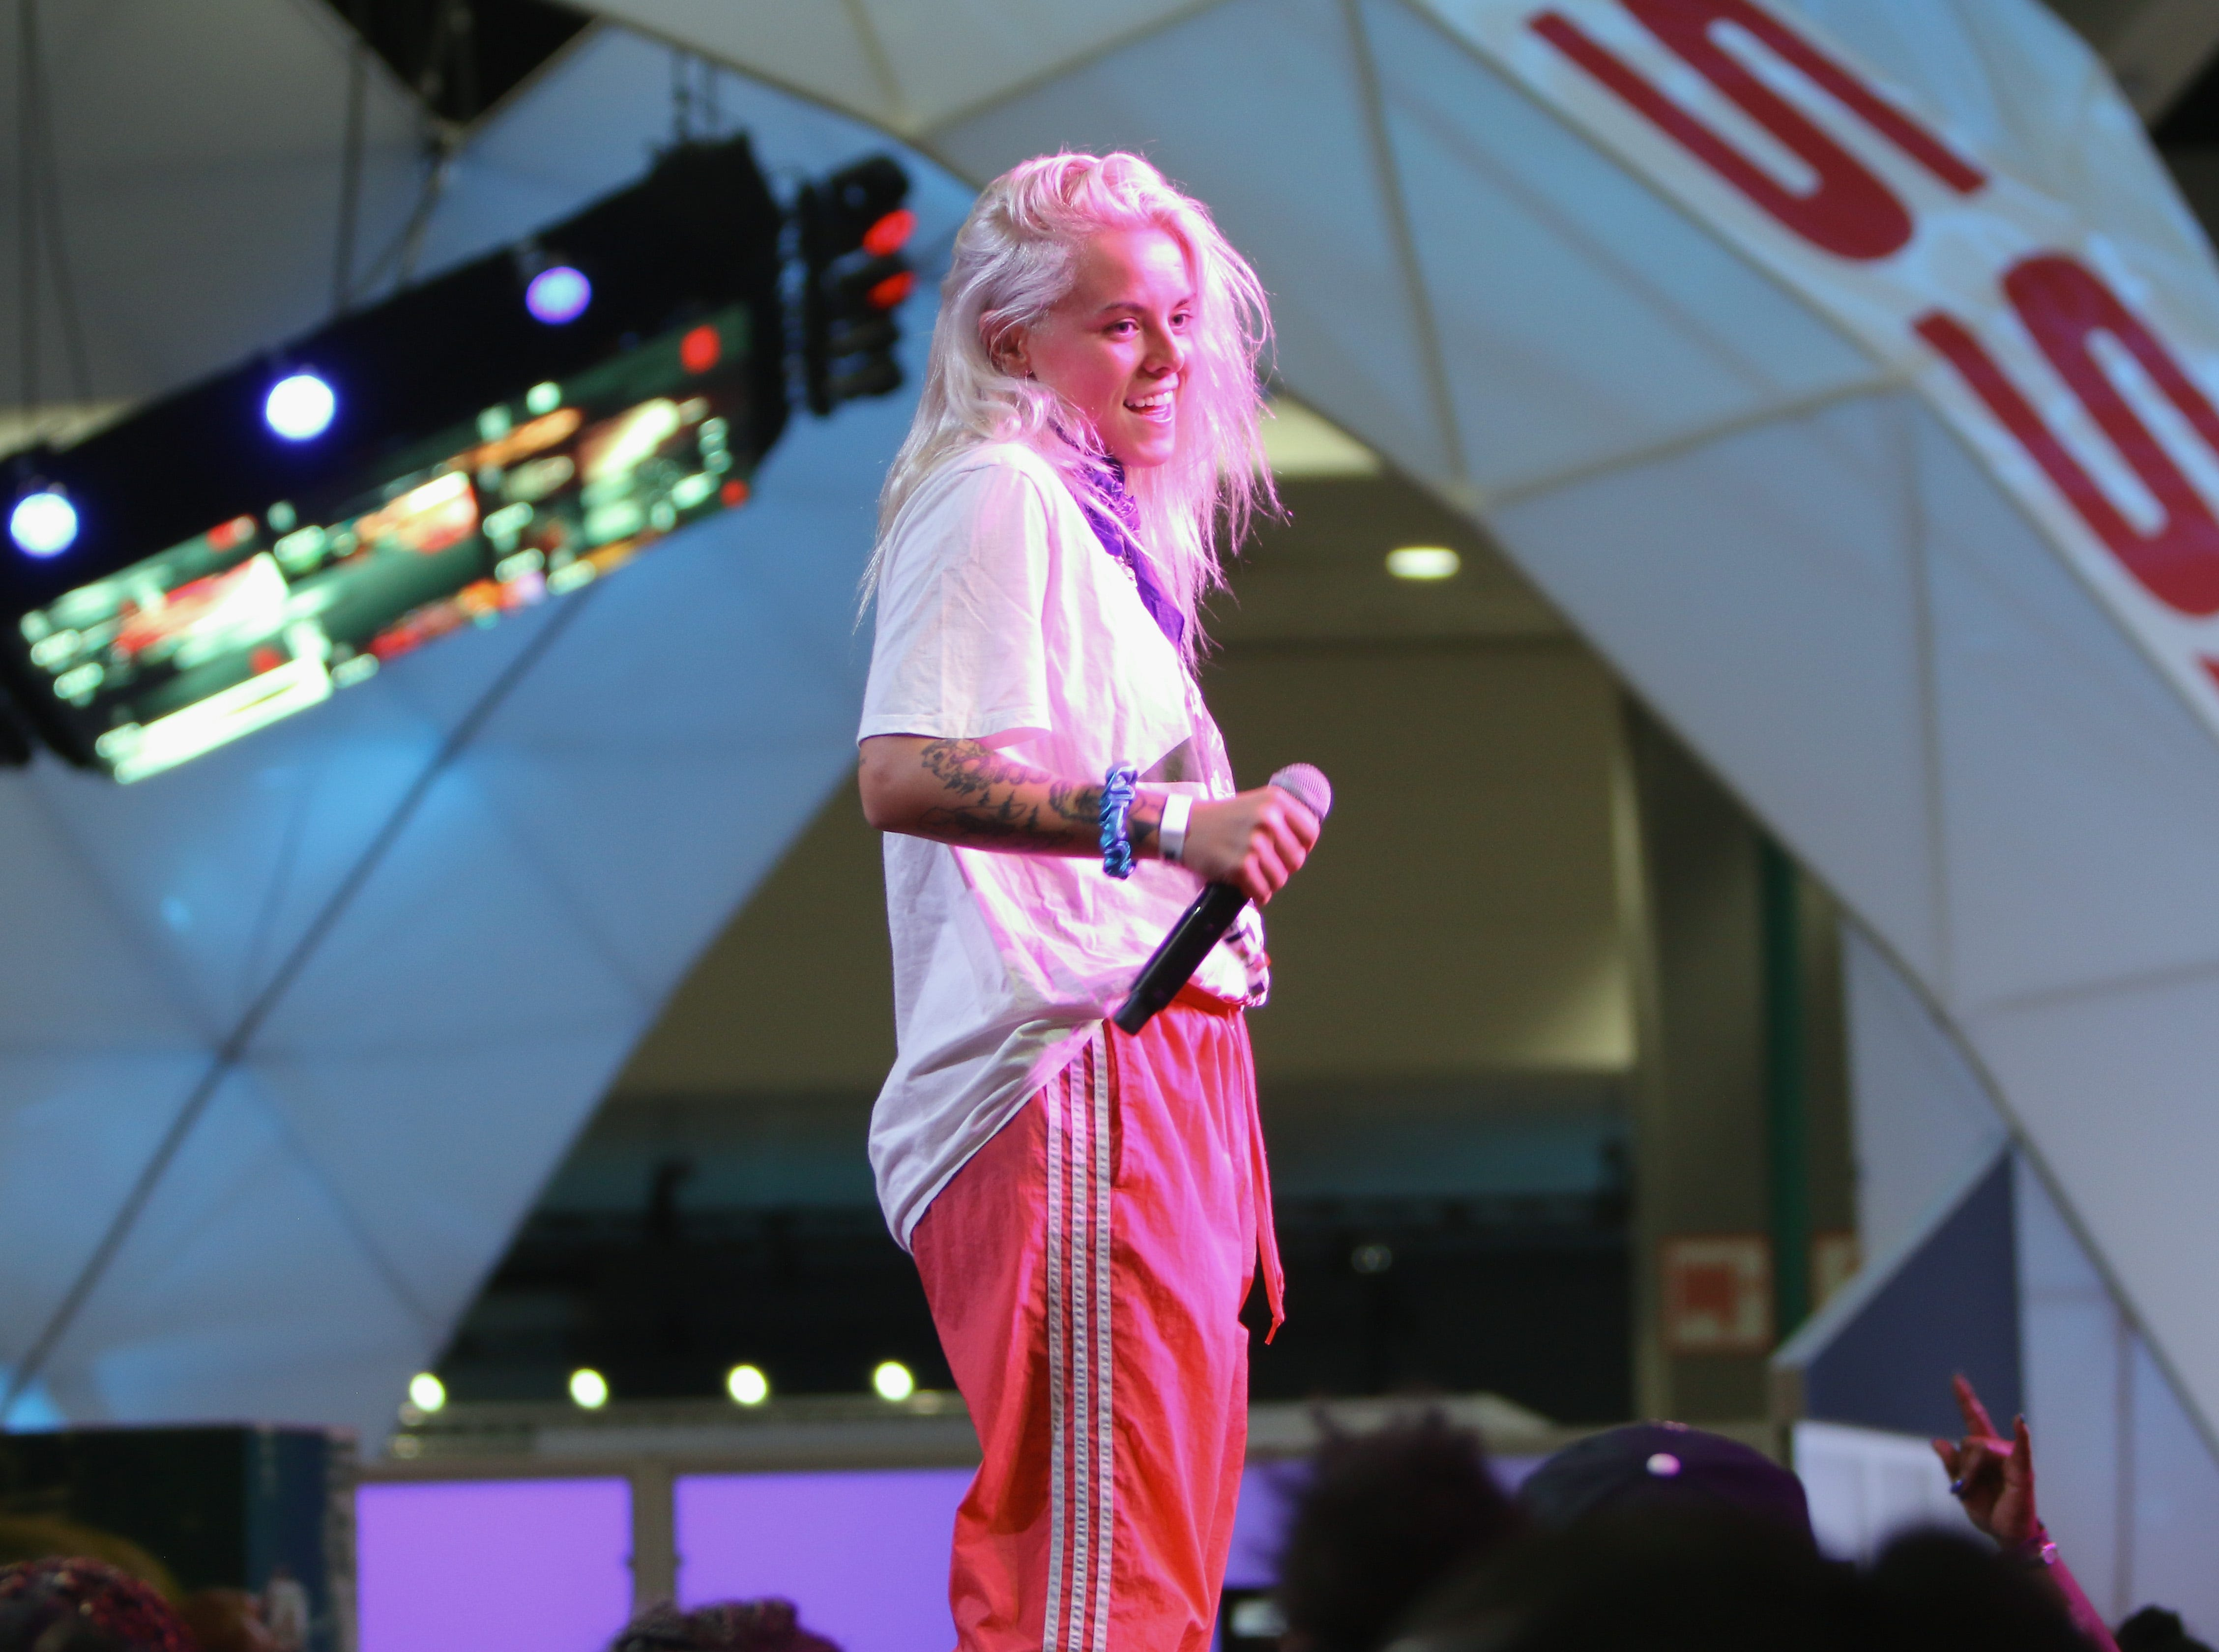 LOS ANGELES, CA - JUNE 22:  Lauren Sanderson performs at the Coca-Cola Music Studio at the 2018 BET Experience Fan Fest at Los Angeles Convention Center on June 22, 2018 in Los Angeles, California.  (Photo by Tasia Wells/Getty Images for BET)